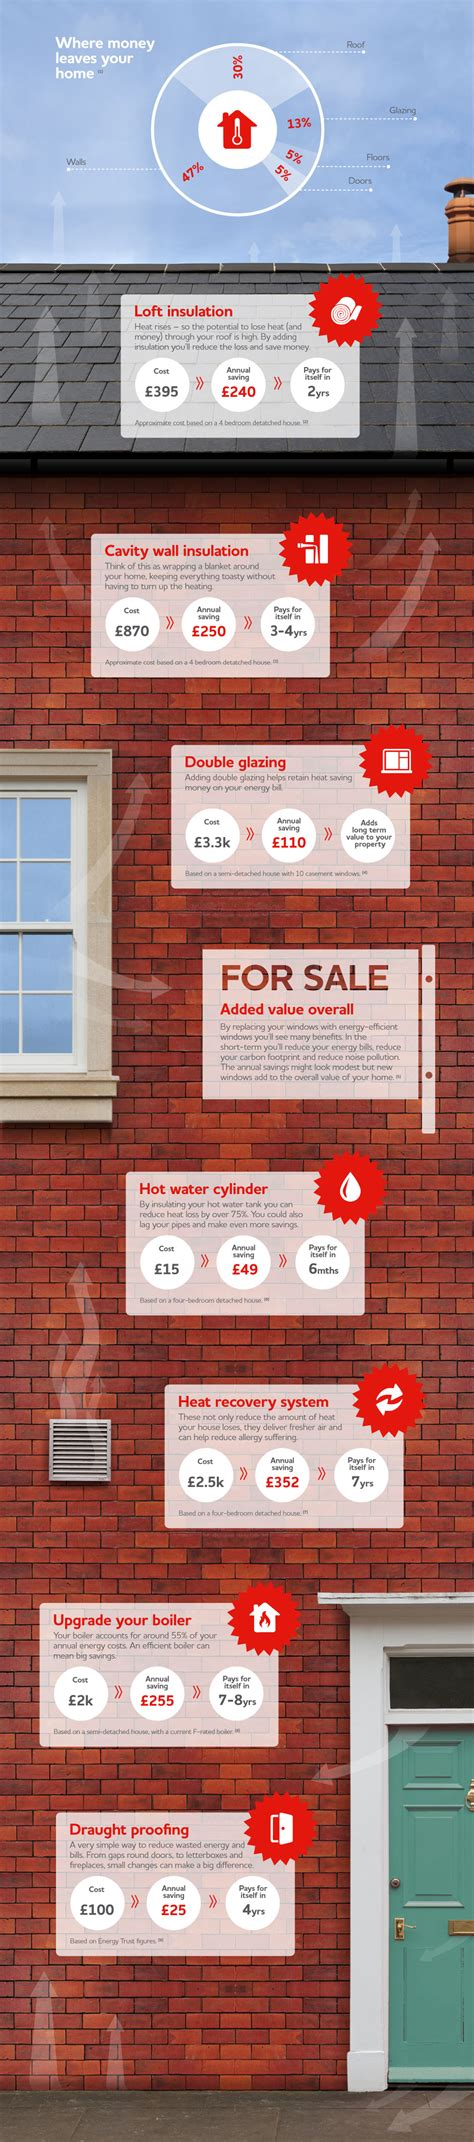 save money through energy saving in your home